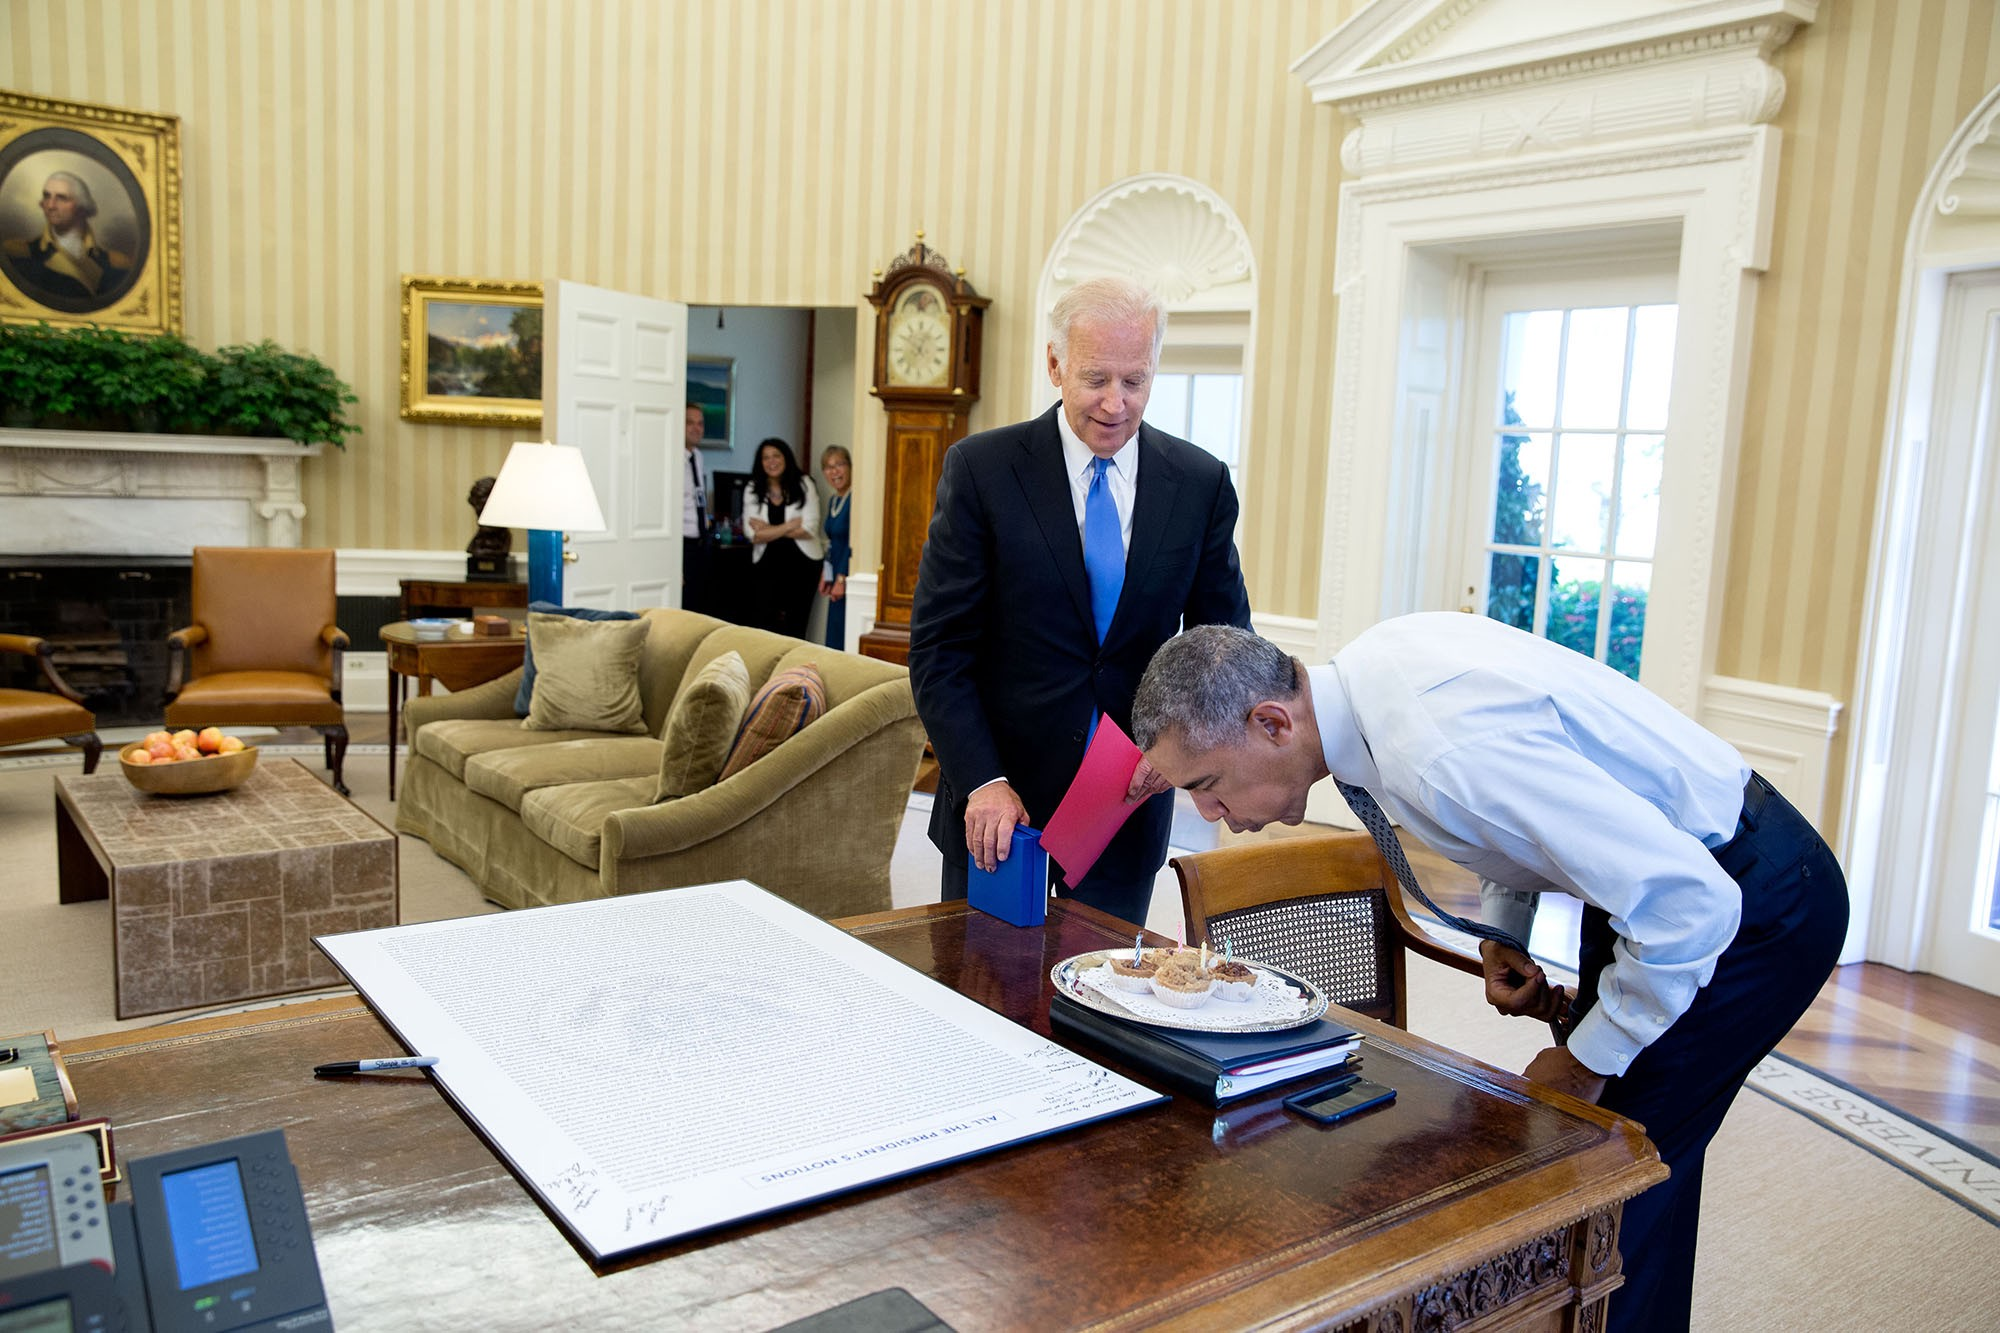 "Aug. 4, 2016 ""With some staff watching in the background, President Obama blows out candles after the Vice President surprised him with some birthday cupcakes."" (Official White House Photo by Pete Souza)"